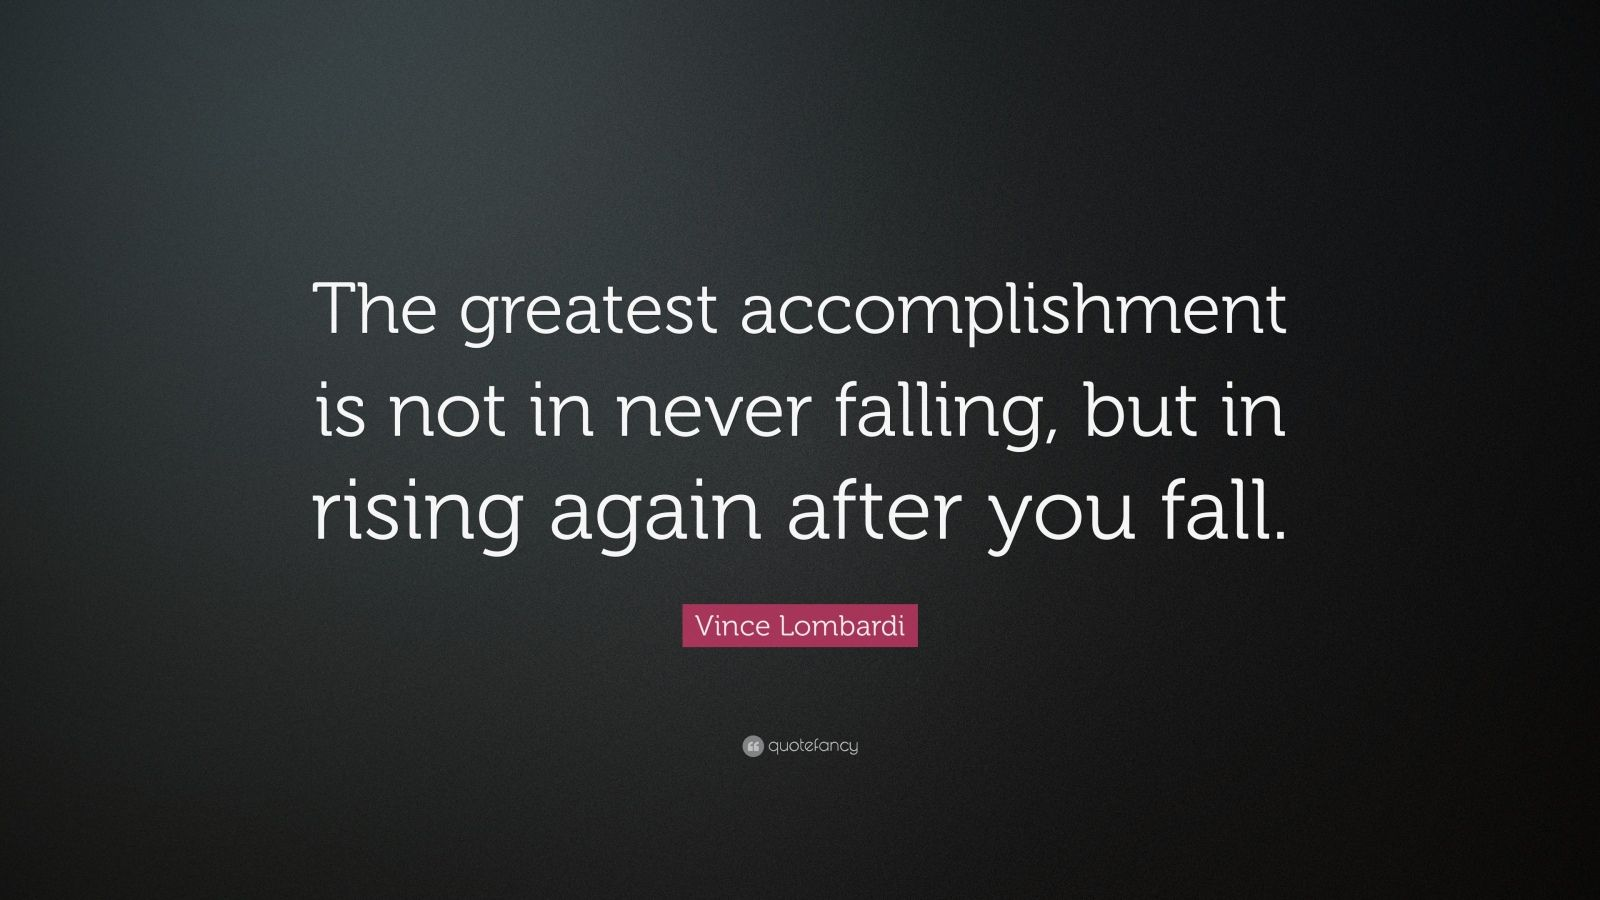 Motivational Football Quotes Wallpaper Vince Lombardi Quote The Greatest Accomplishment Is Not